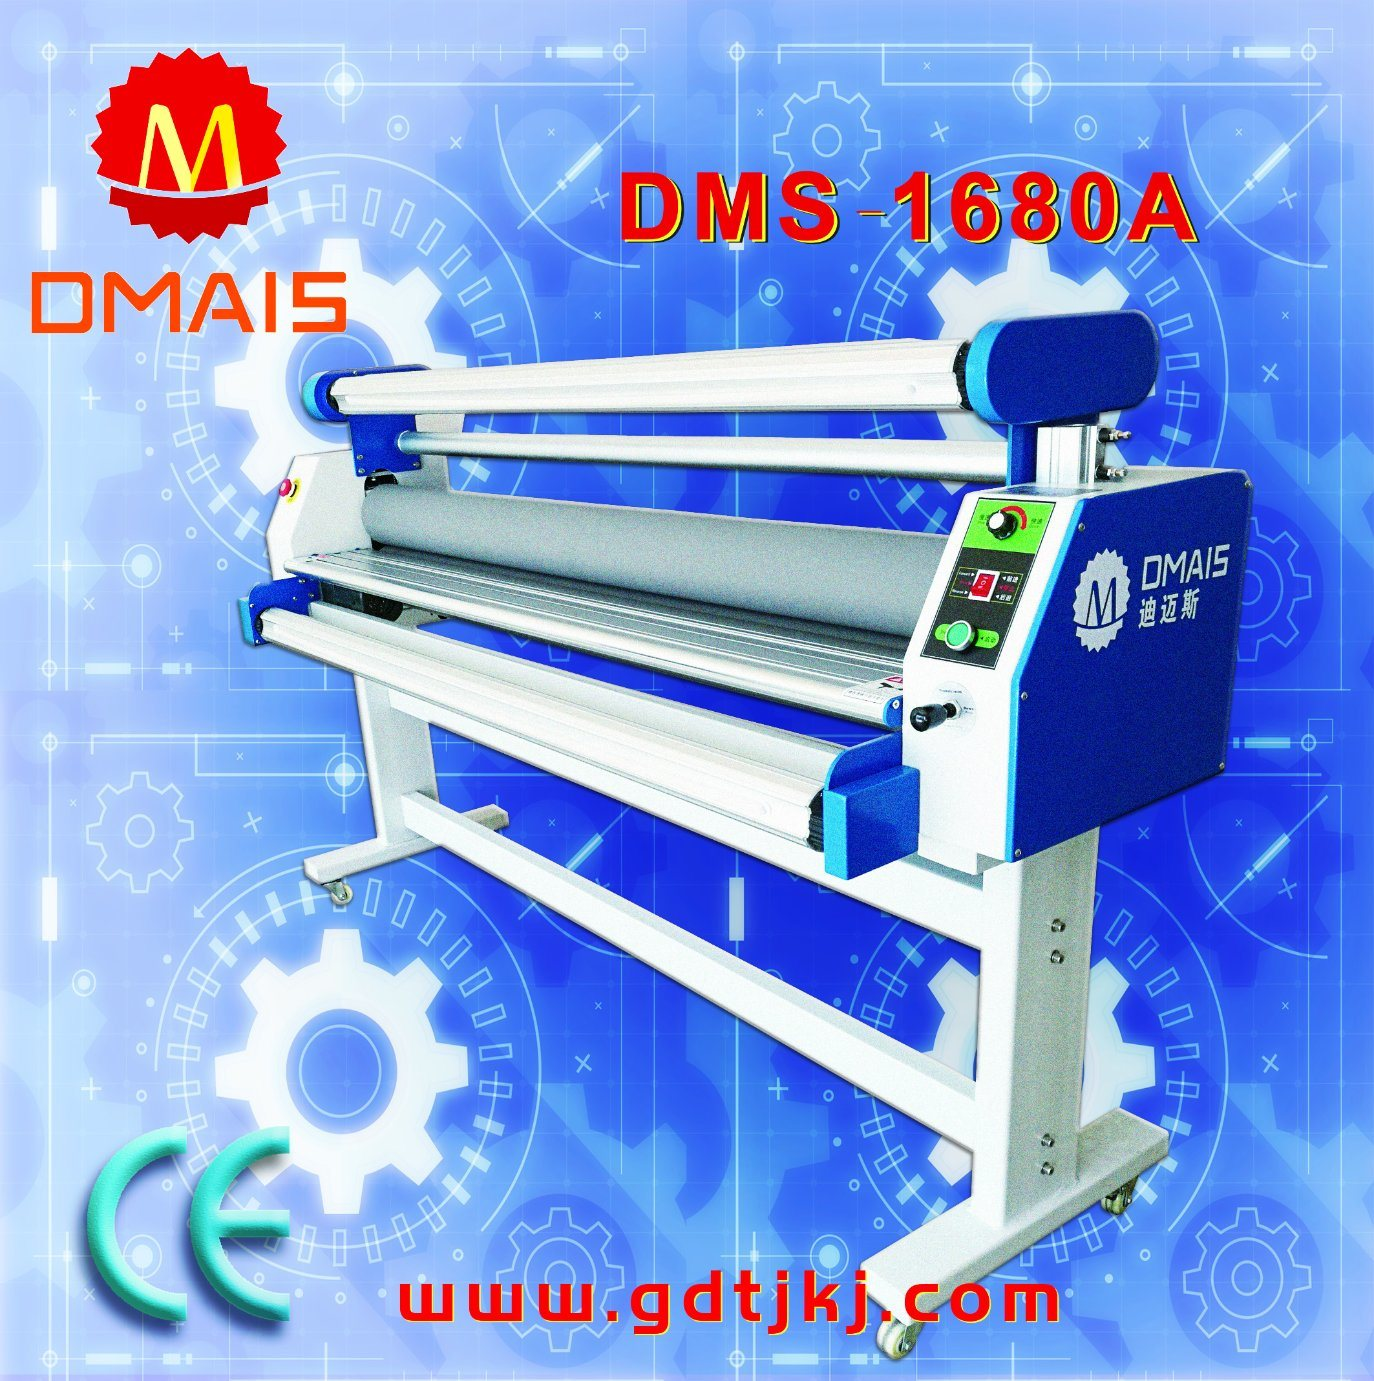 Dmais Full-Automatic Hot and Cold Laminating Machine with Cutting